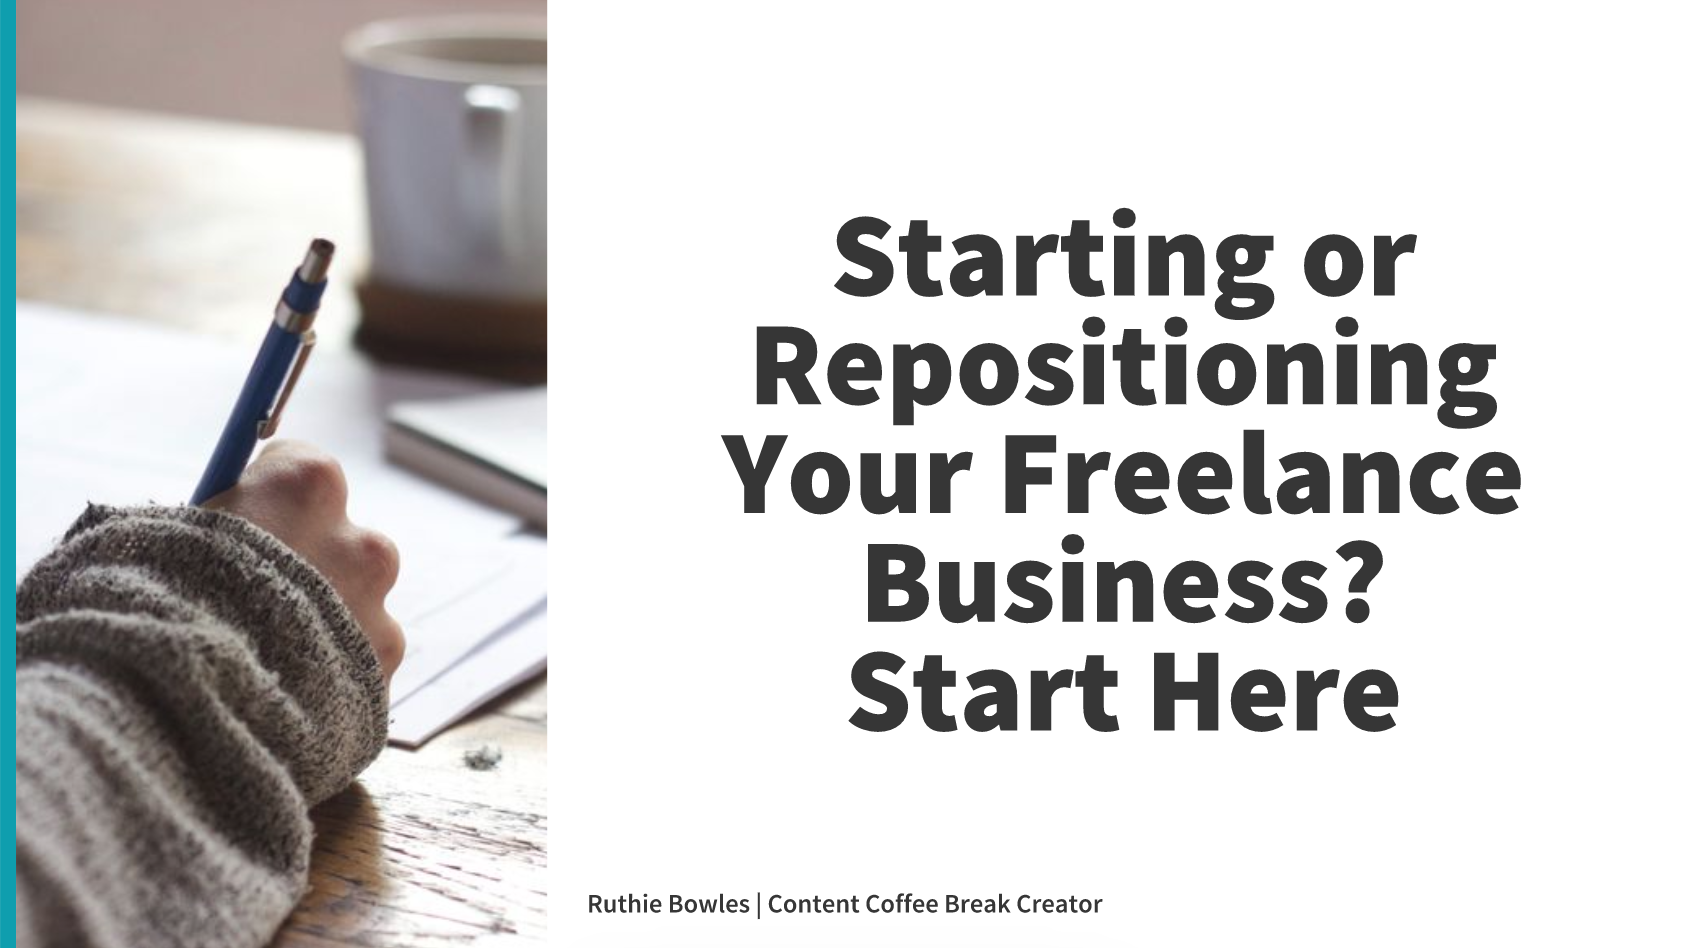 Video: Starting or Repositioning Your Freelance Writing Business?